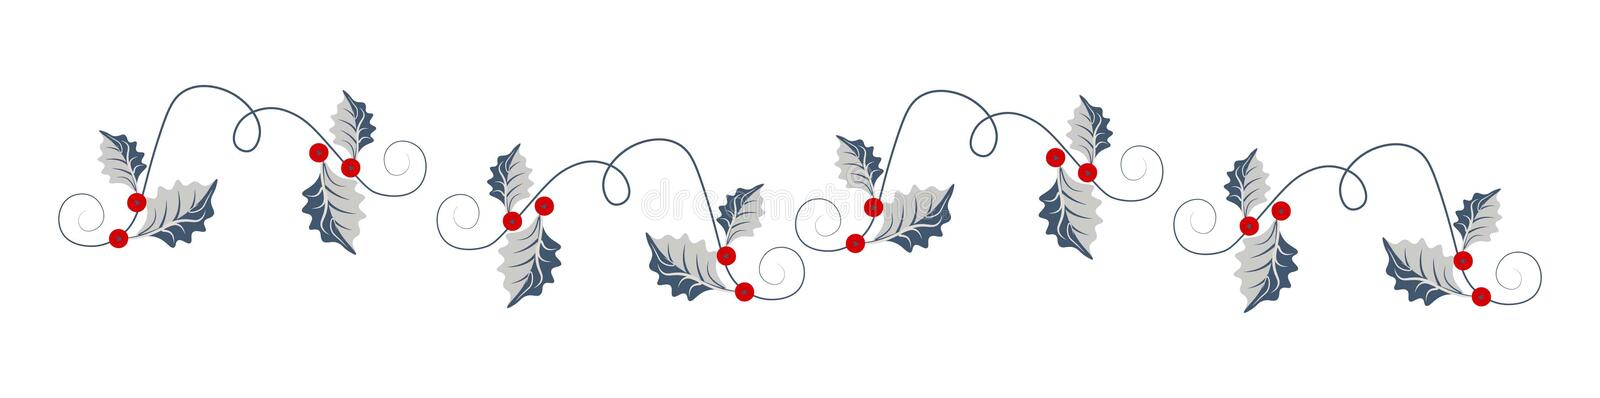 Christmas web heading with holy leaves royalty free illustration